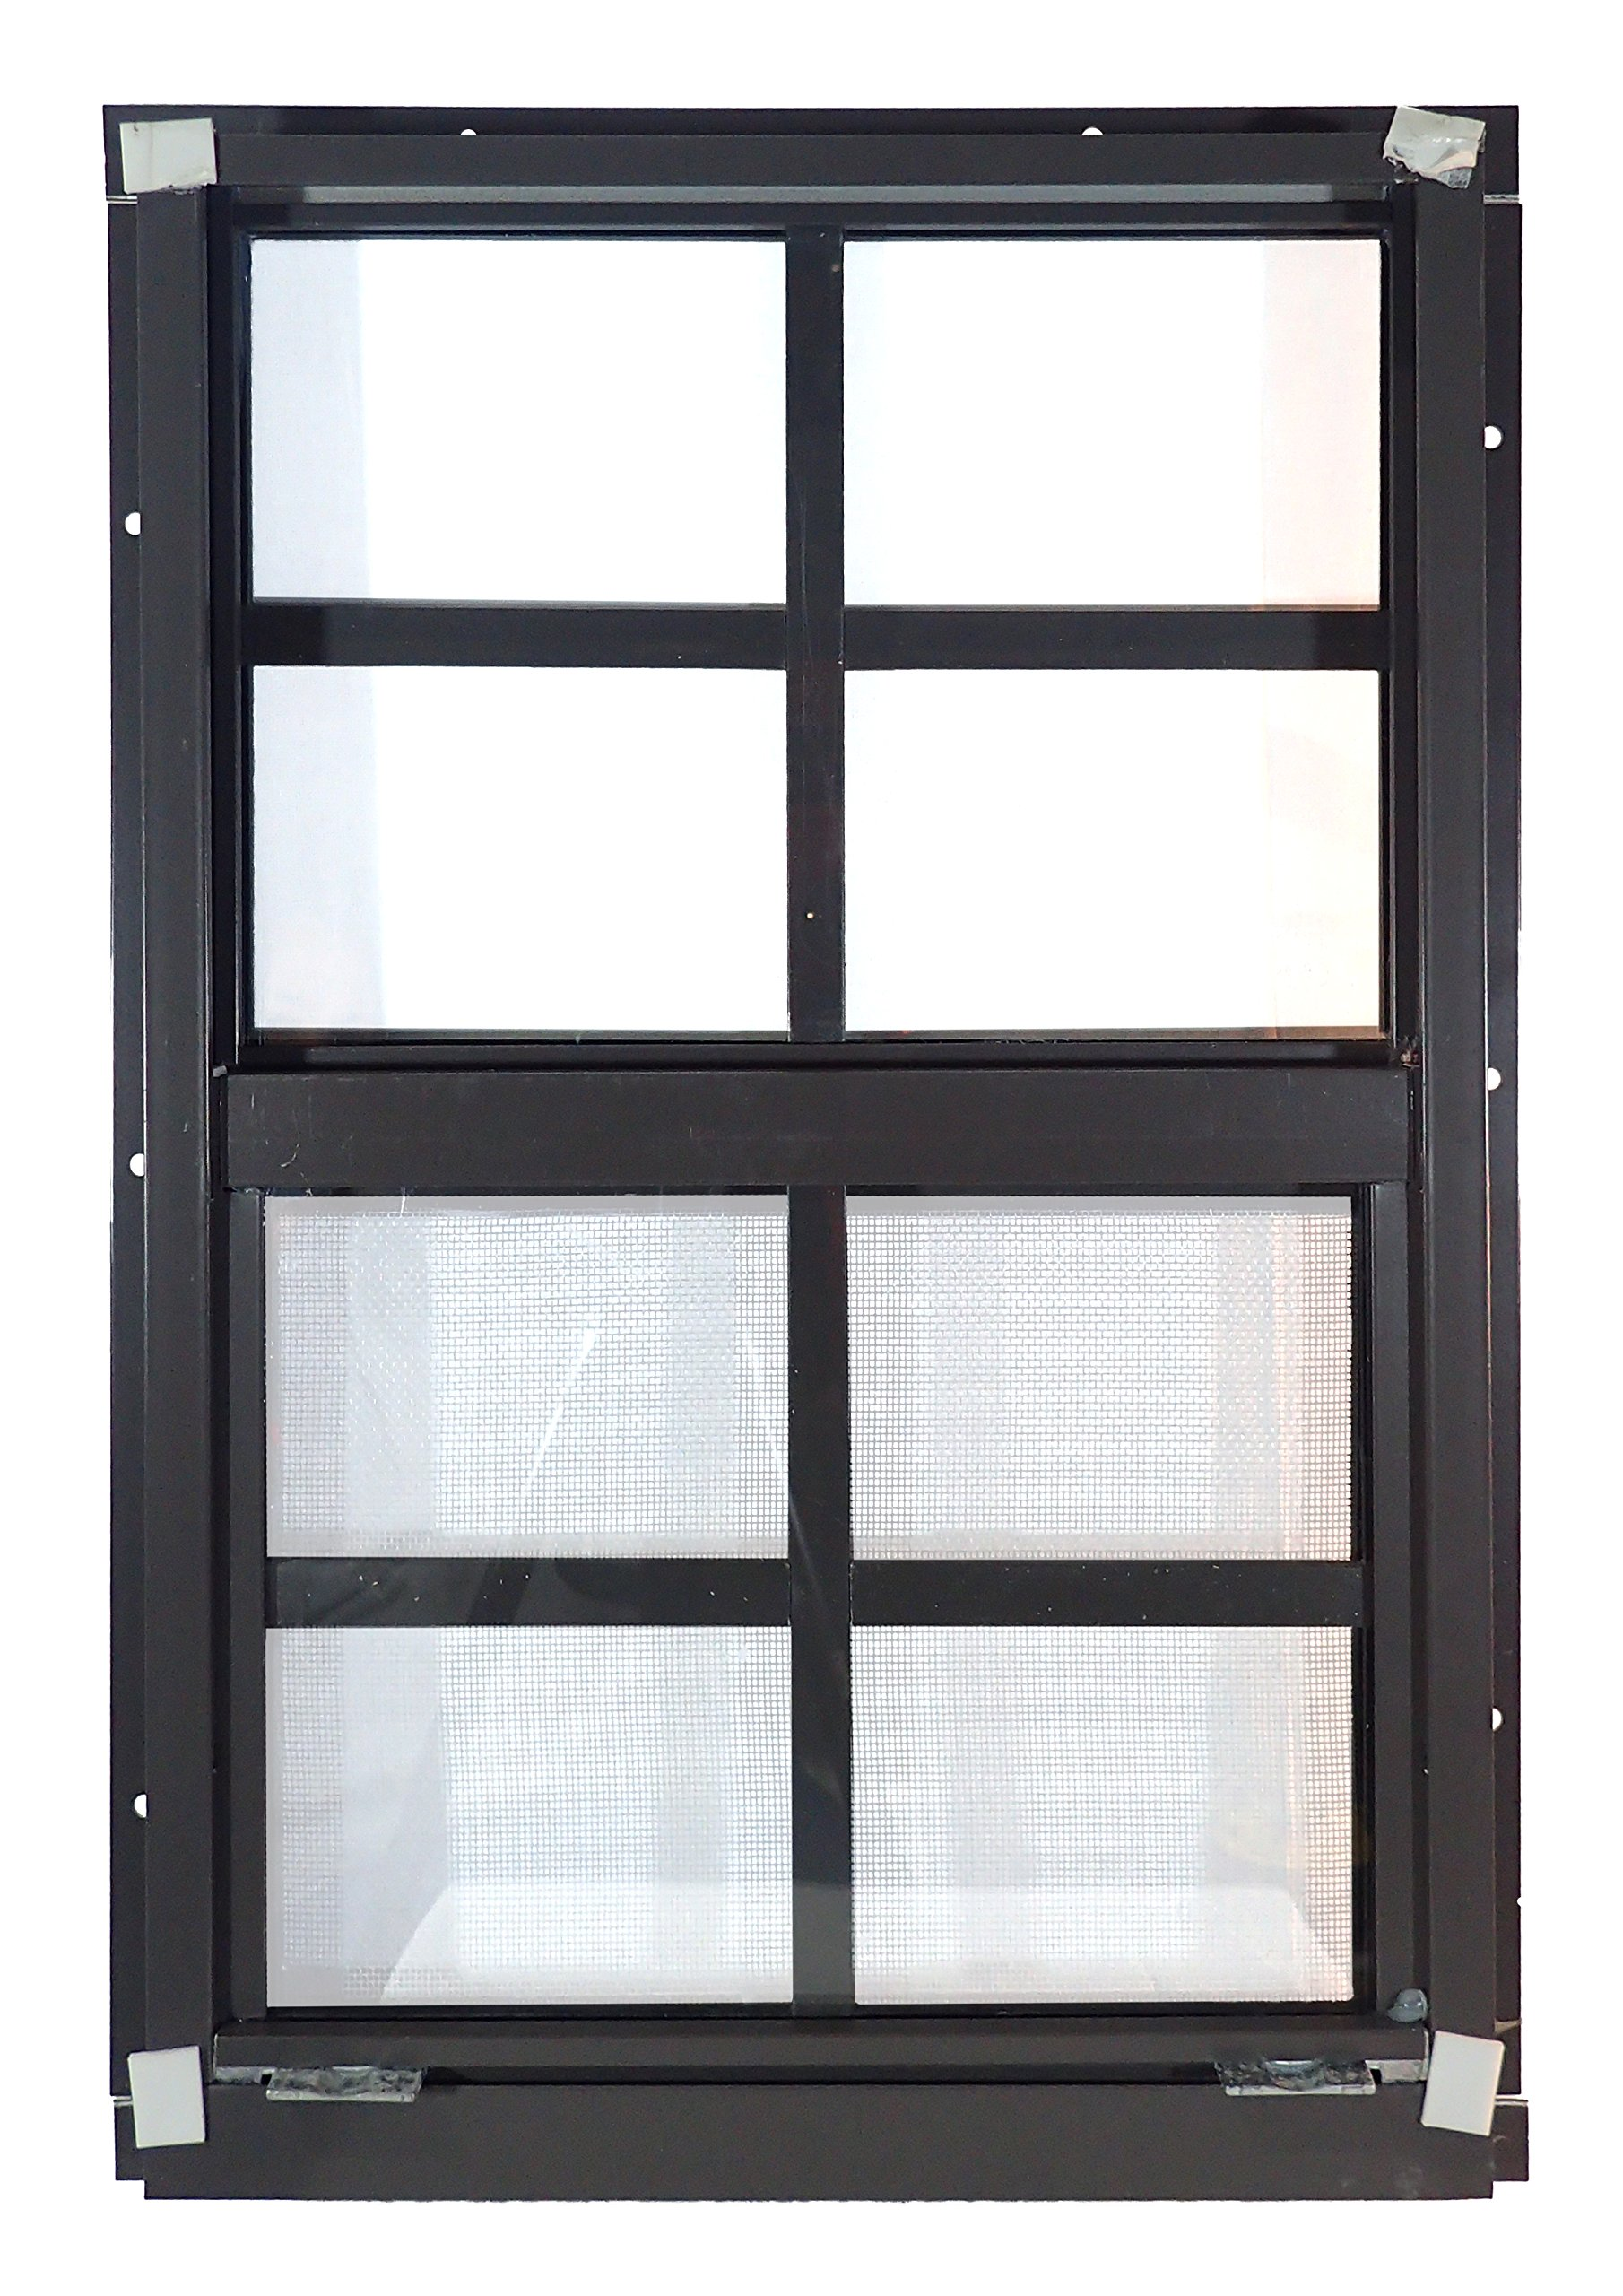 Shed Windows 12'' W x 18'' H - Flush Mount w/ Safety Glass - Playhouse Windows (Brown)